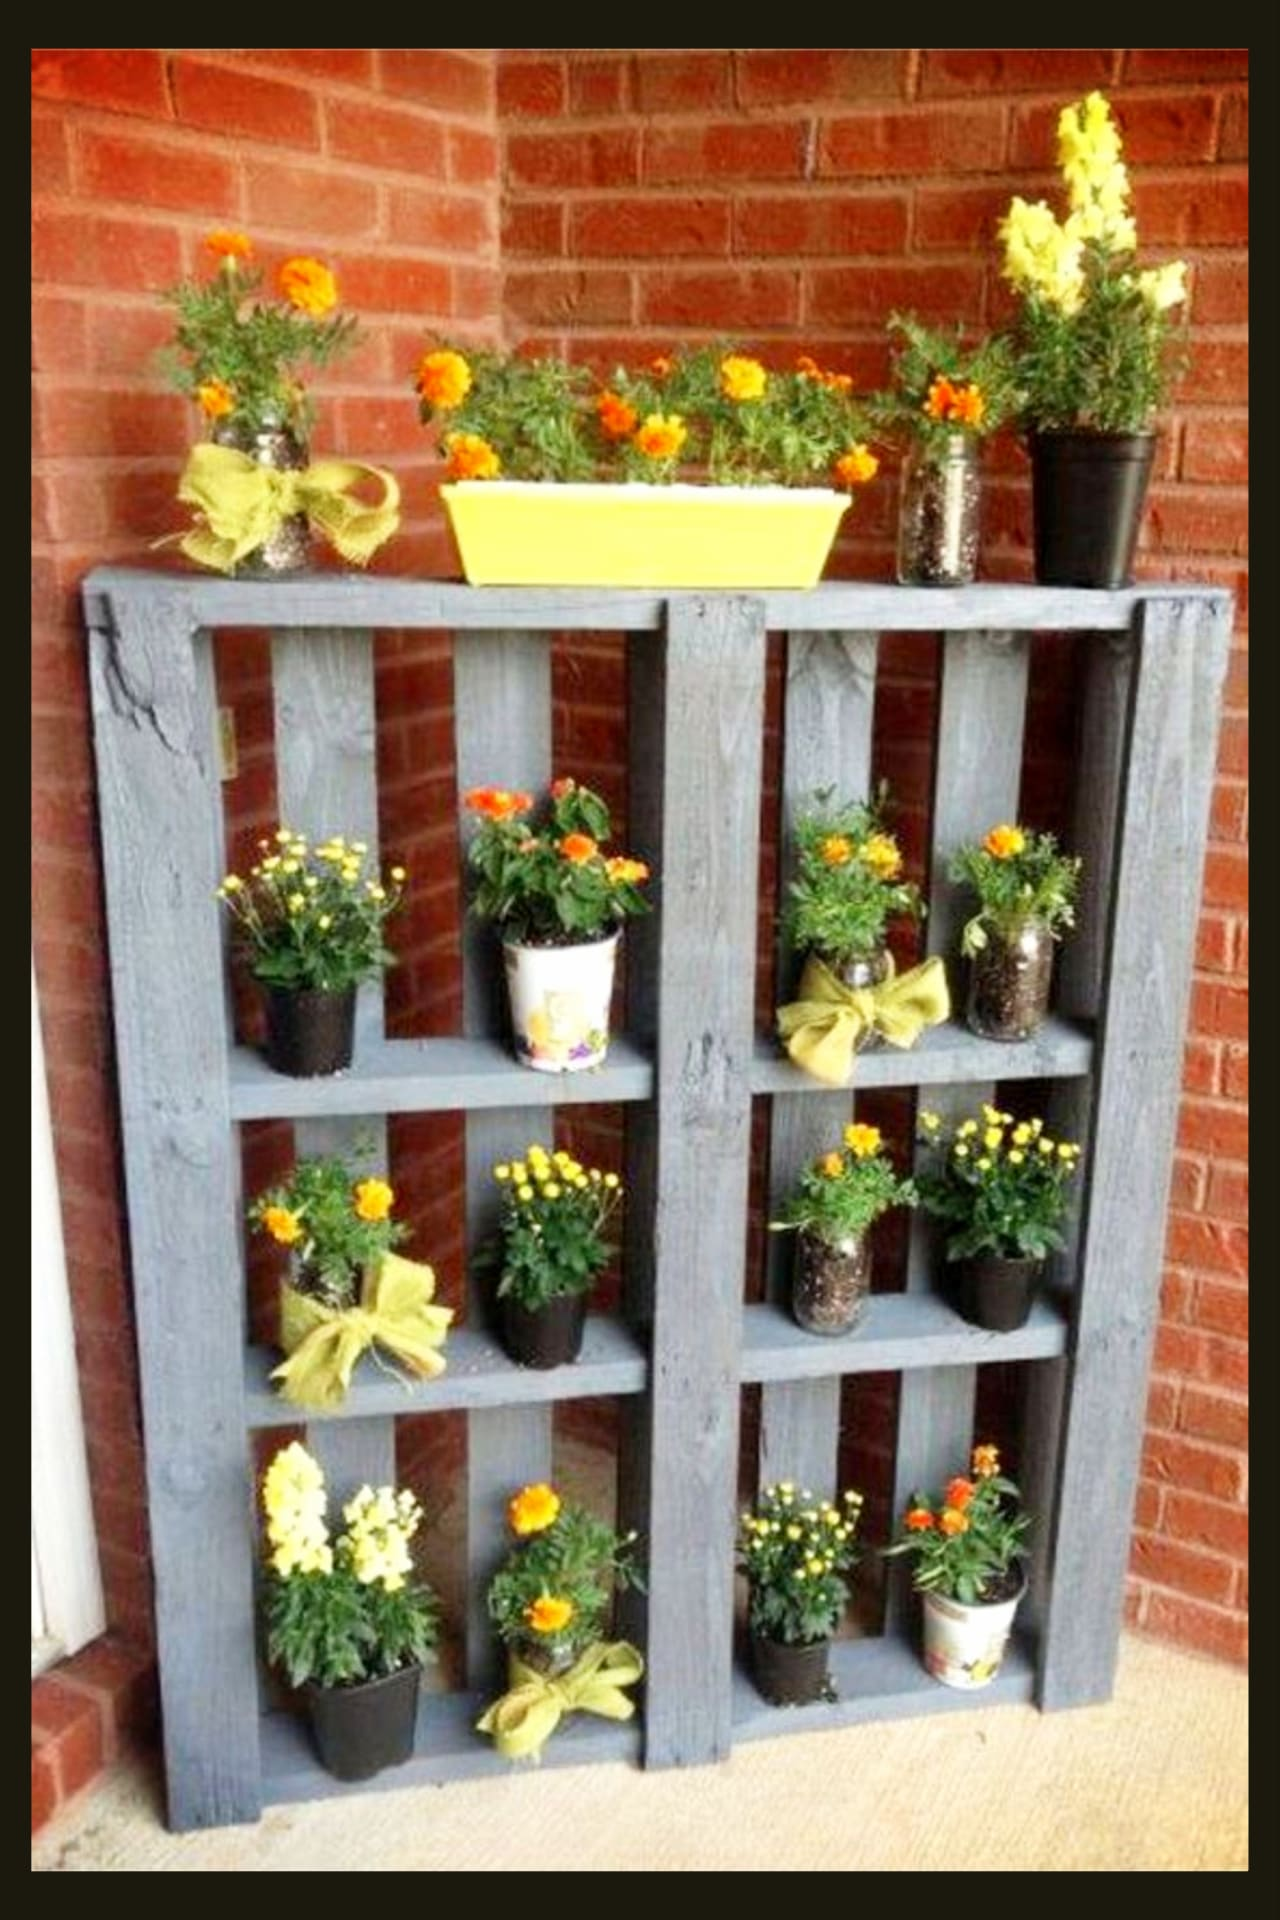 Pallet projects - such simple and easy pallet project ideas to make and sell - simple DIY outdoor pallet projects for backyards, garden, patio, deck or porch to hold flowers and plants - pallet projects for beginners